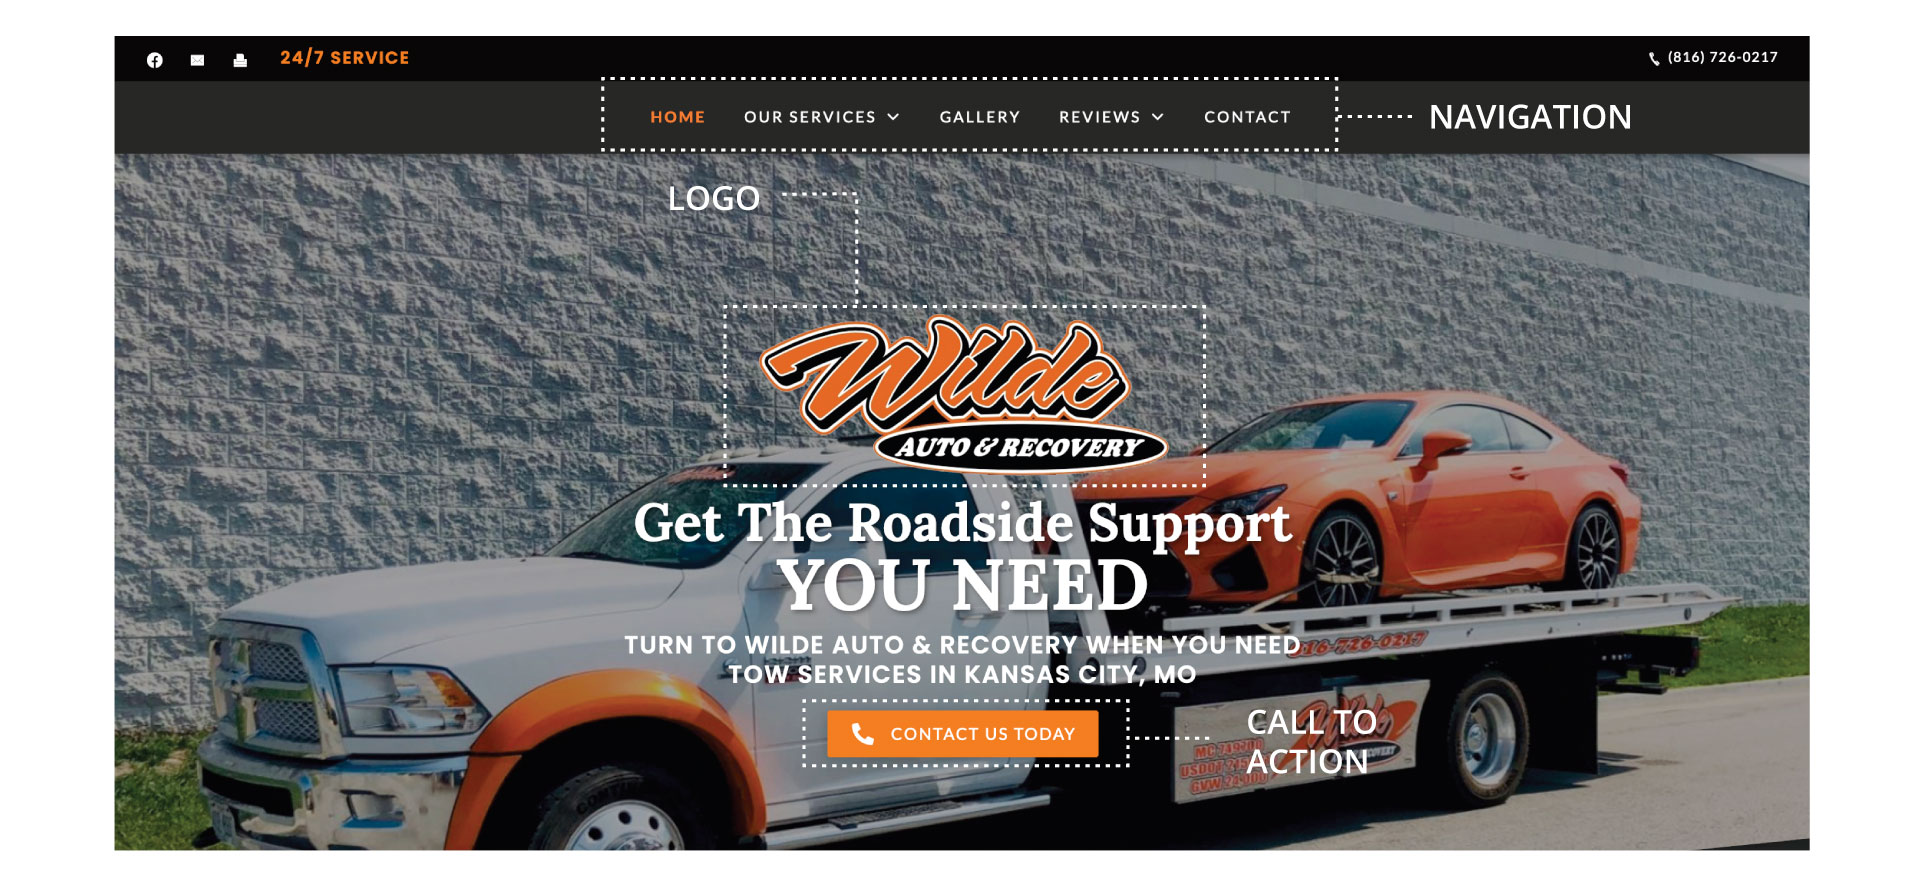 Tow truck website components